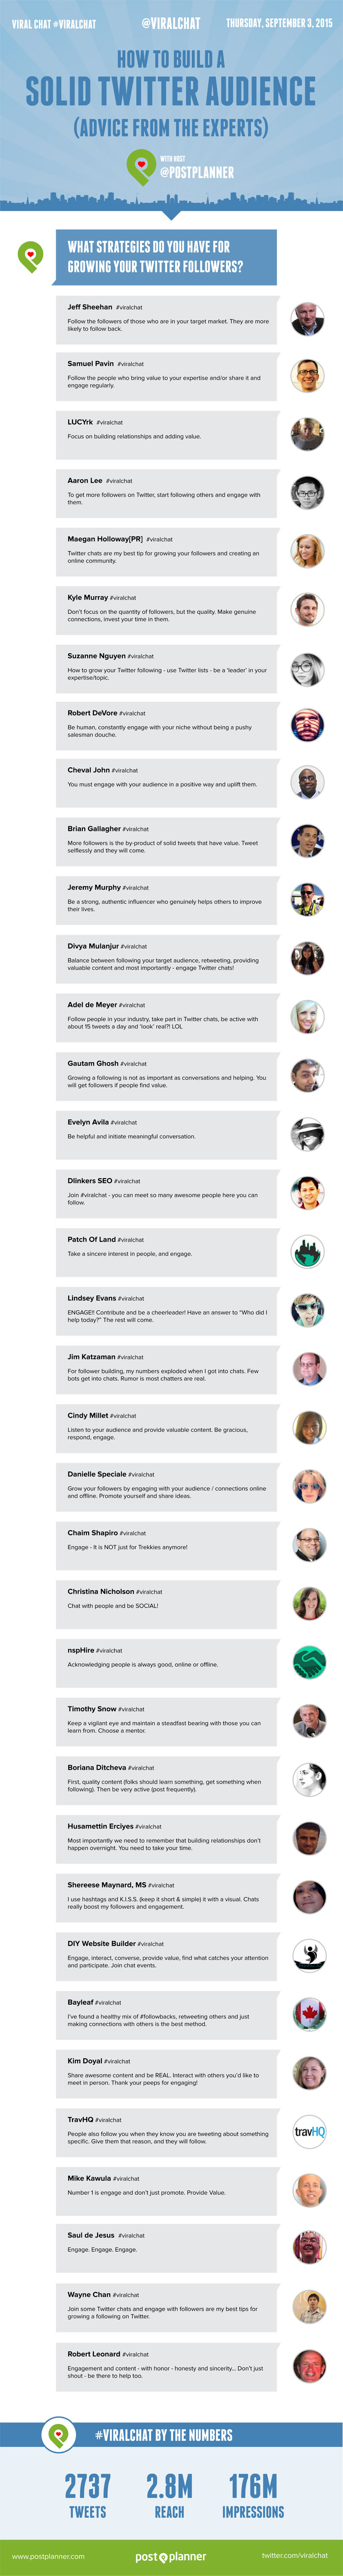 how-to-build-solid-twitter-audience-infographic